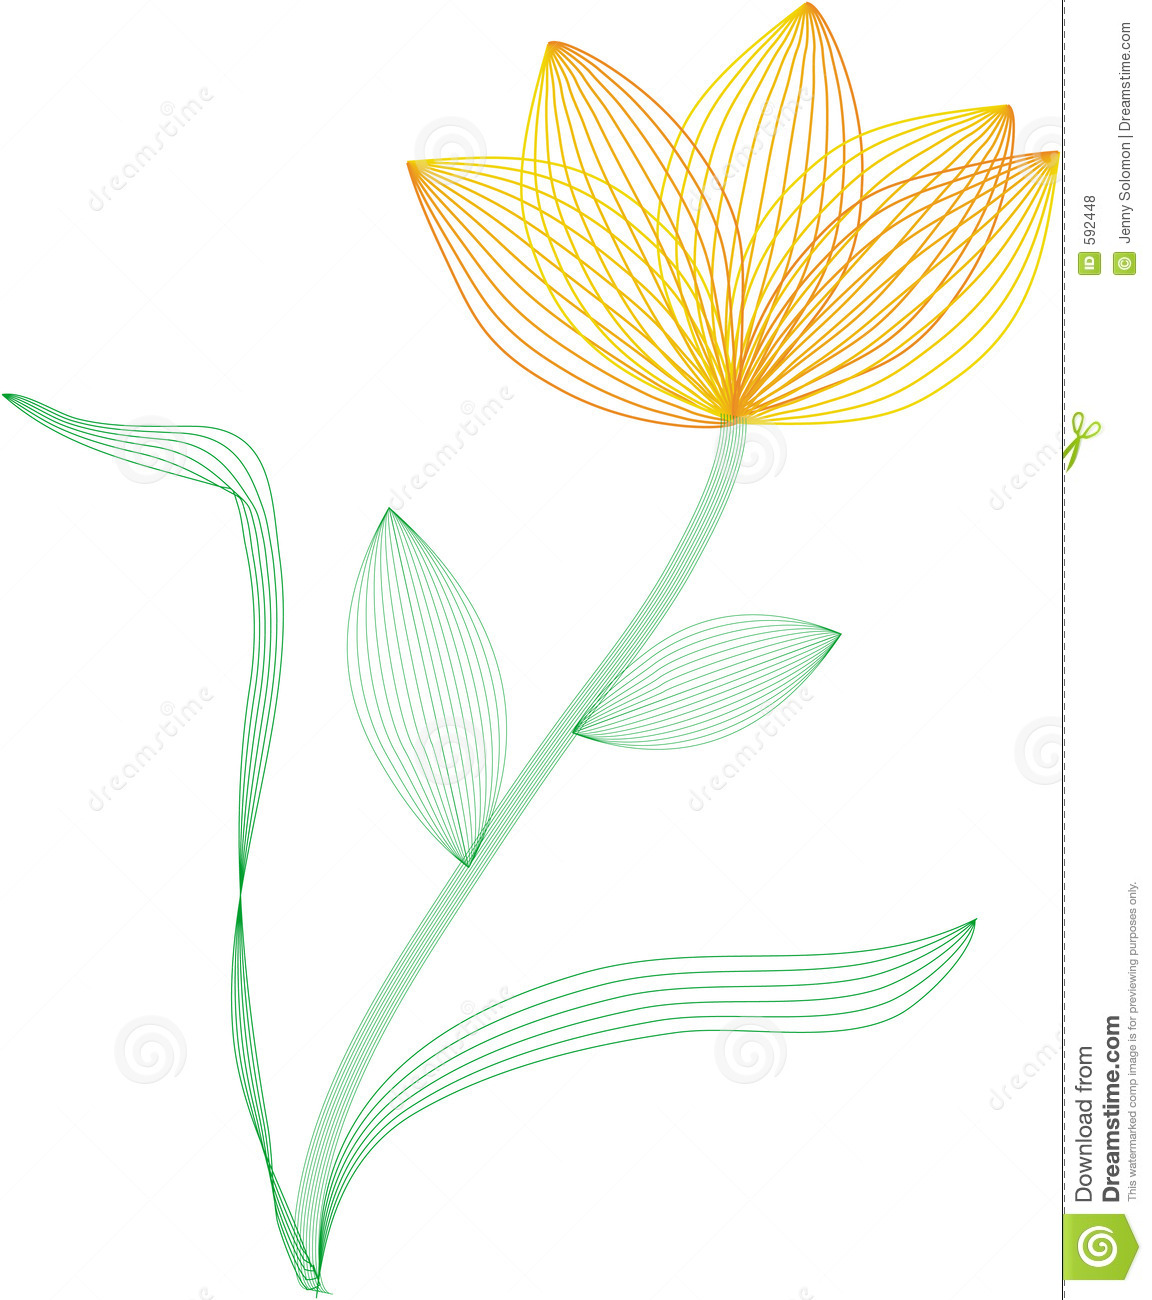 Wire frame flower stock vector. Illustration of abstract - 592448